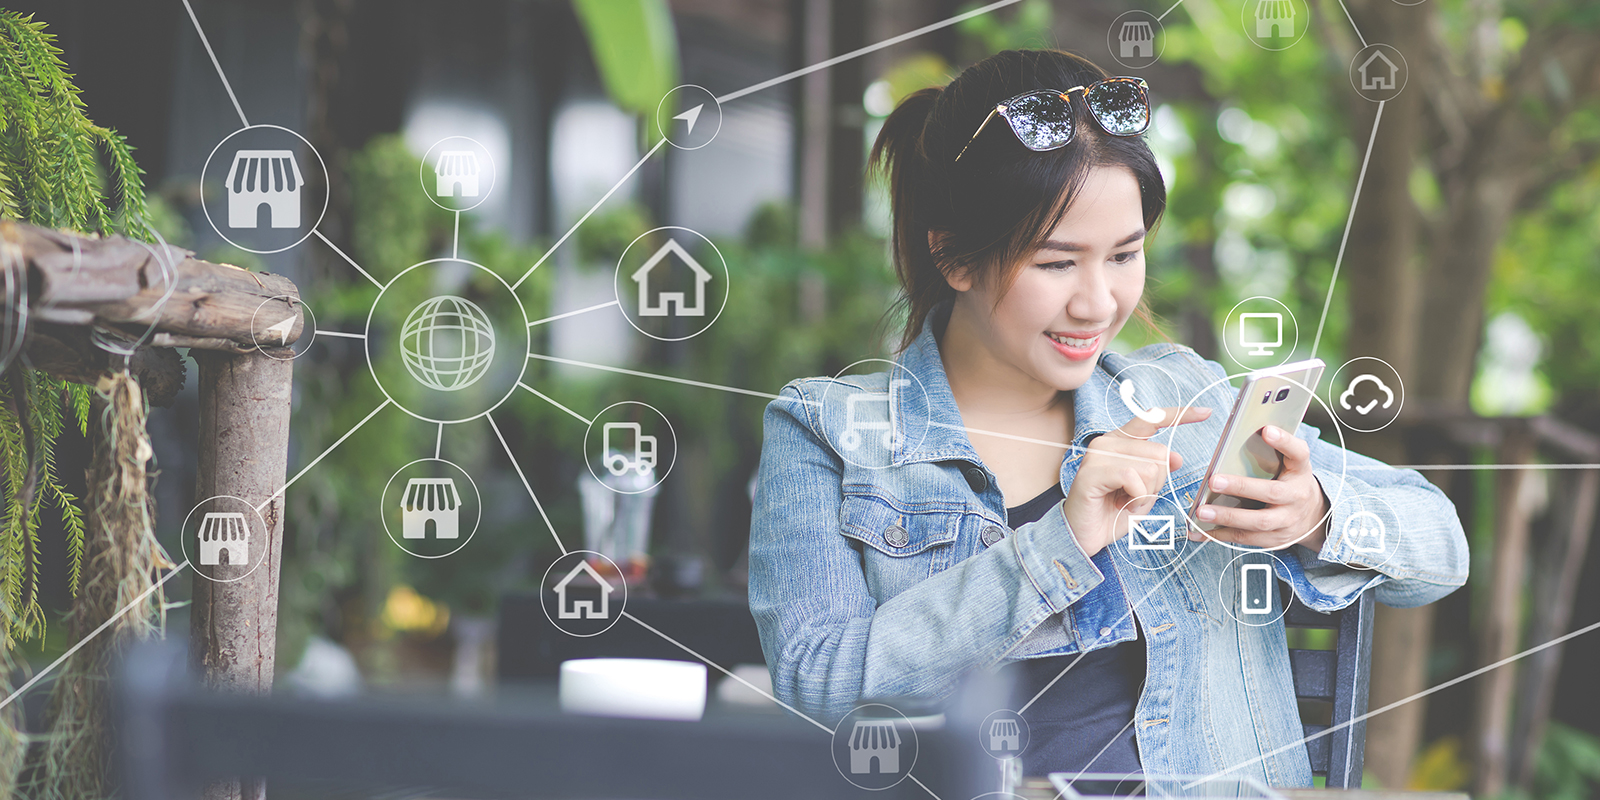 woman-using-mobile-payments-online-shopping-and-icon-customer-network-connection-on-screen-m-banking-and-connecting-with-omni-channel-vendor-internet-of-thing-multi-channel-or-omni-channel-concept